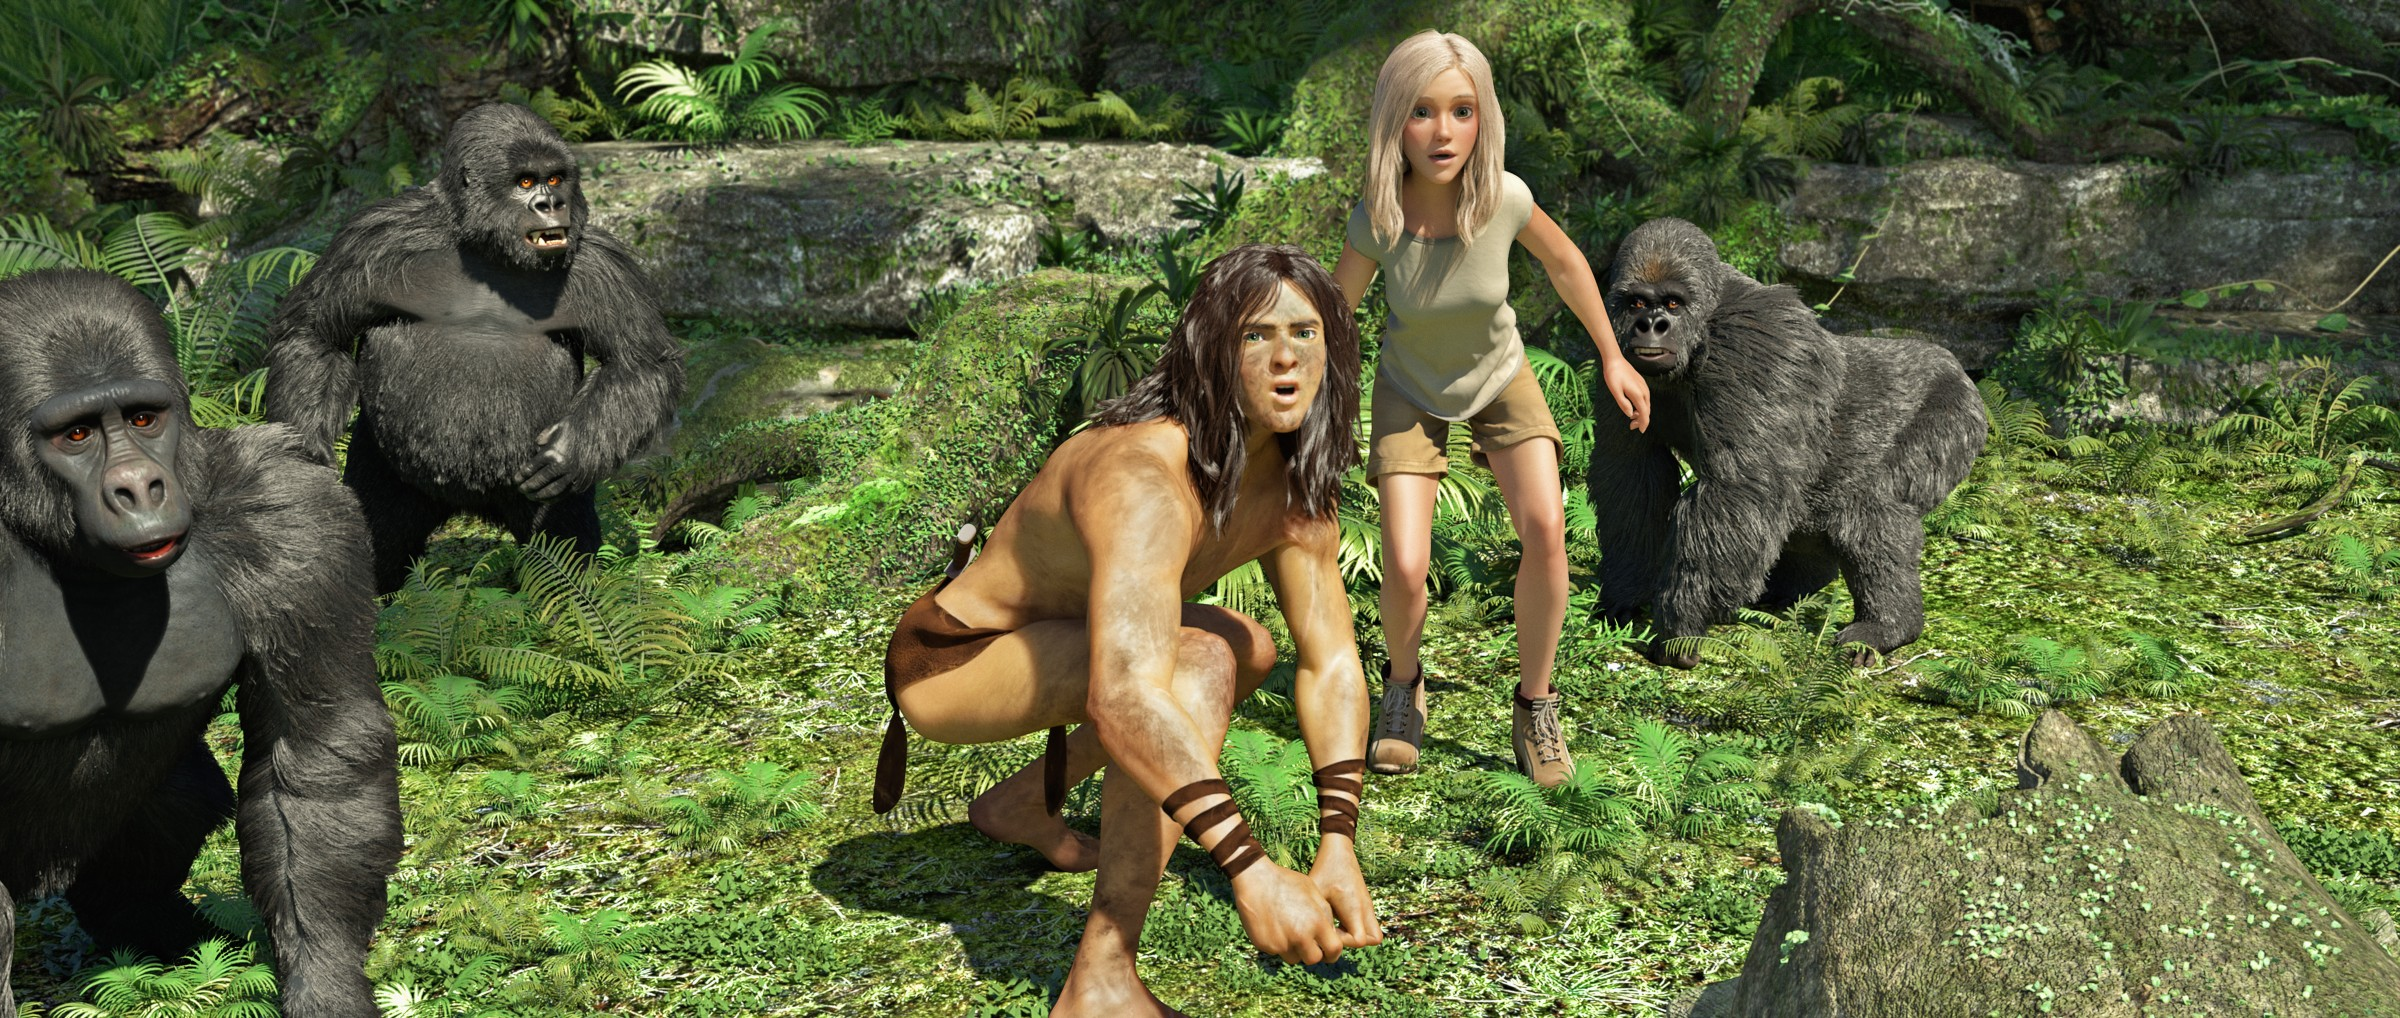 Tarzan 3D-Animation Official Poster Banner PROMO PHOTOS-10DEZEMBRO2013-04